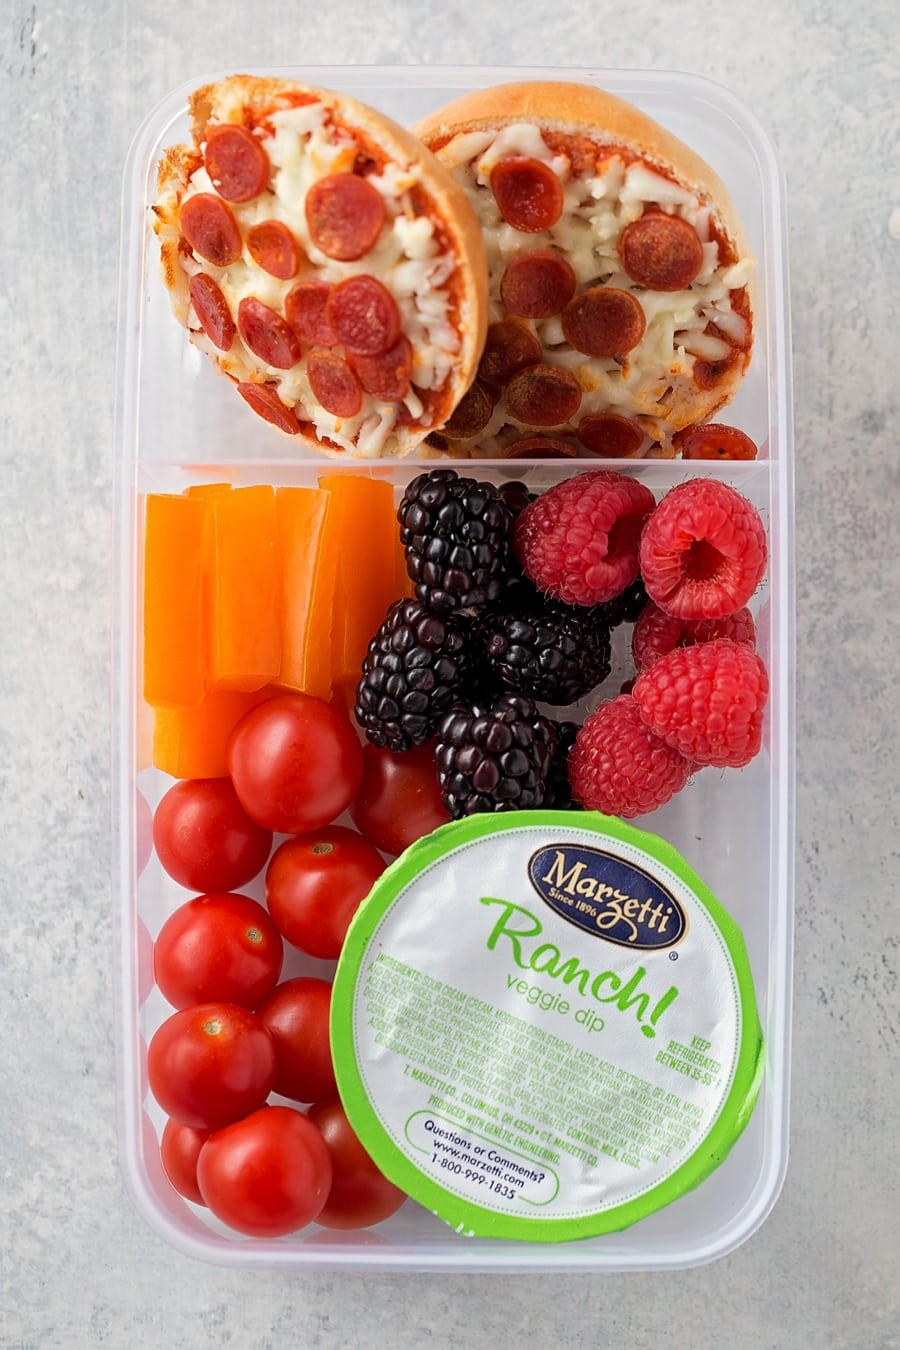 easy lunch box idea with mini pizza bagels, berries, carrots, and tomatoes